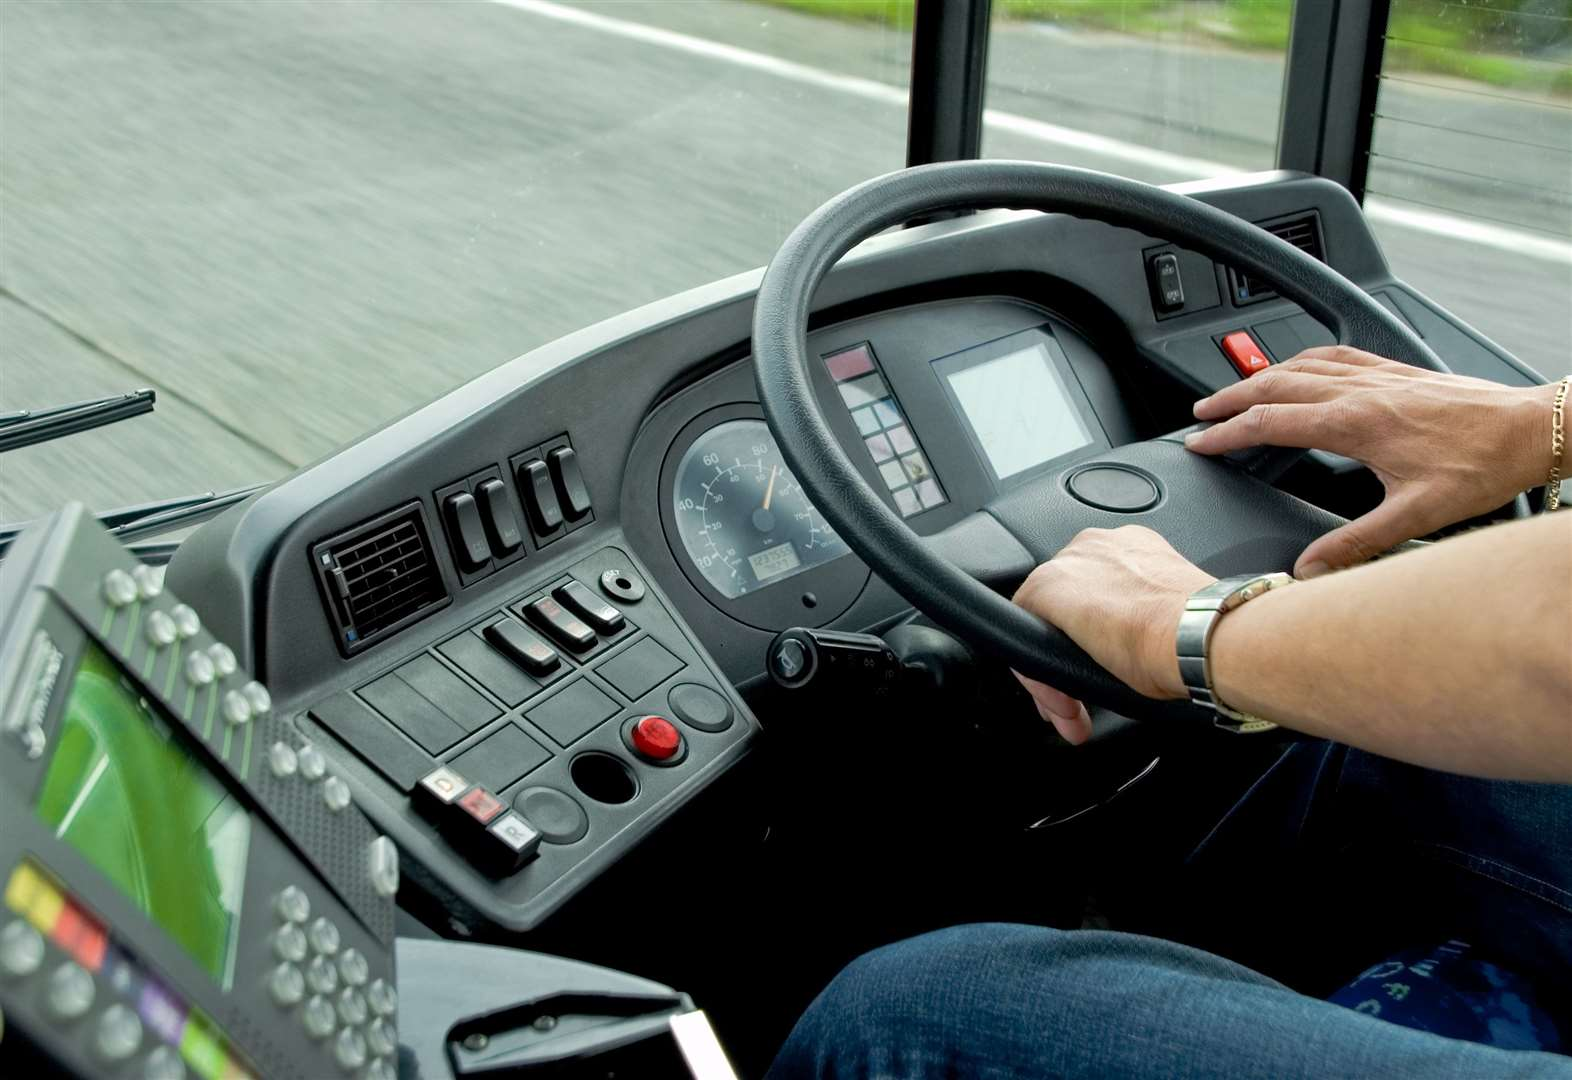 Bus drivers issued spit testing kits to fight abuse